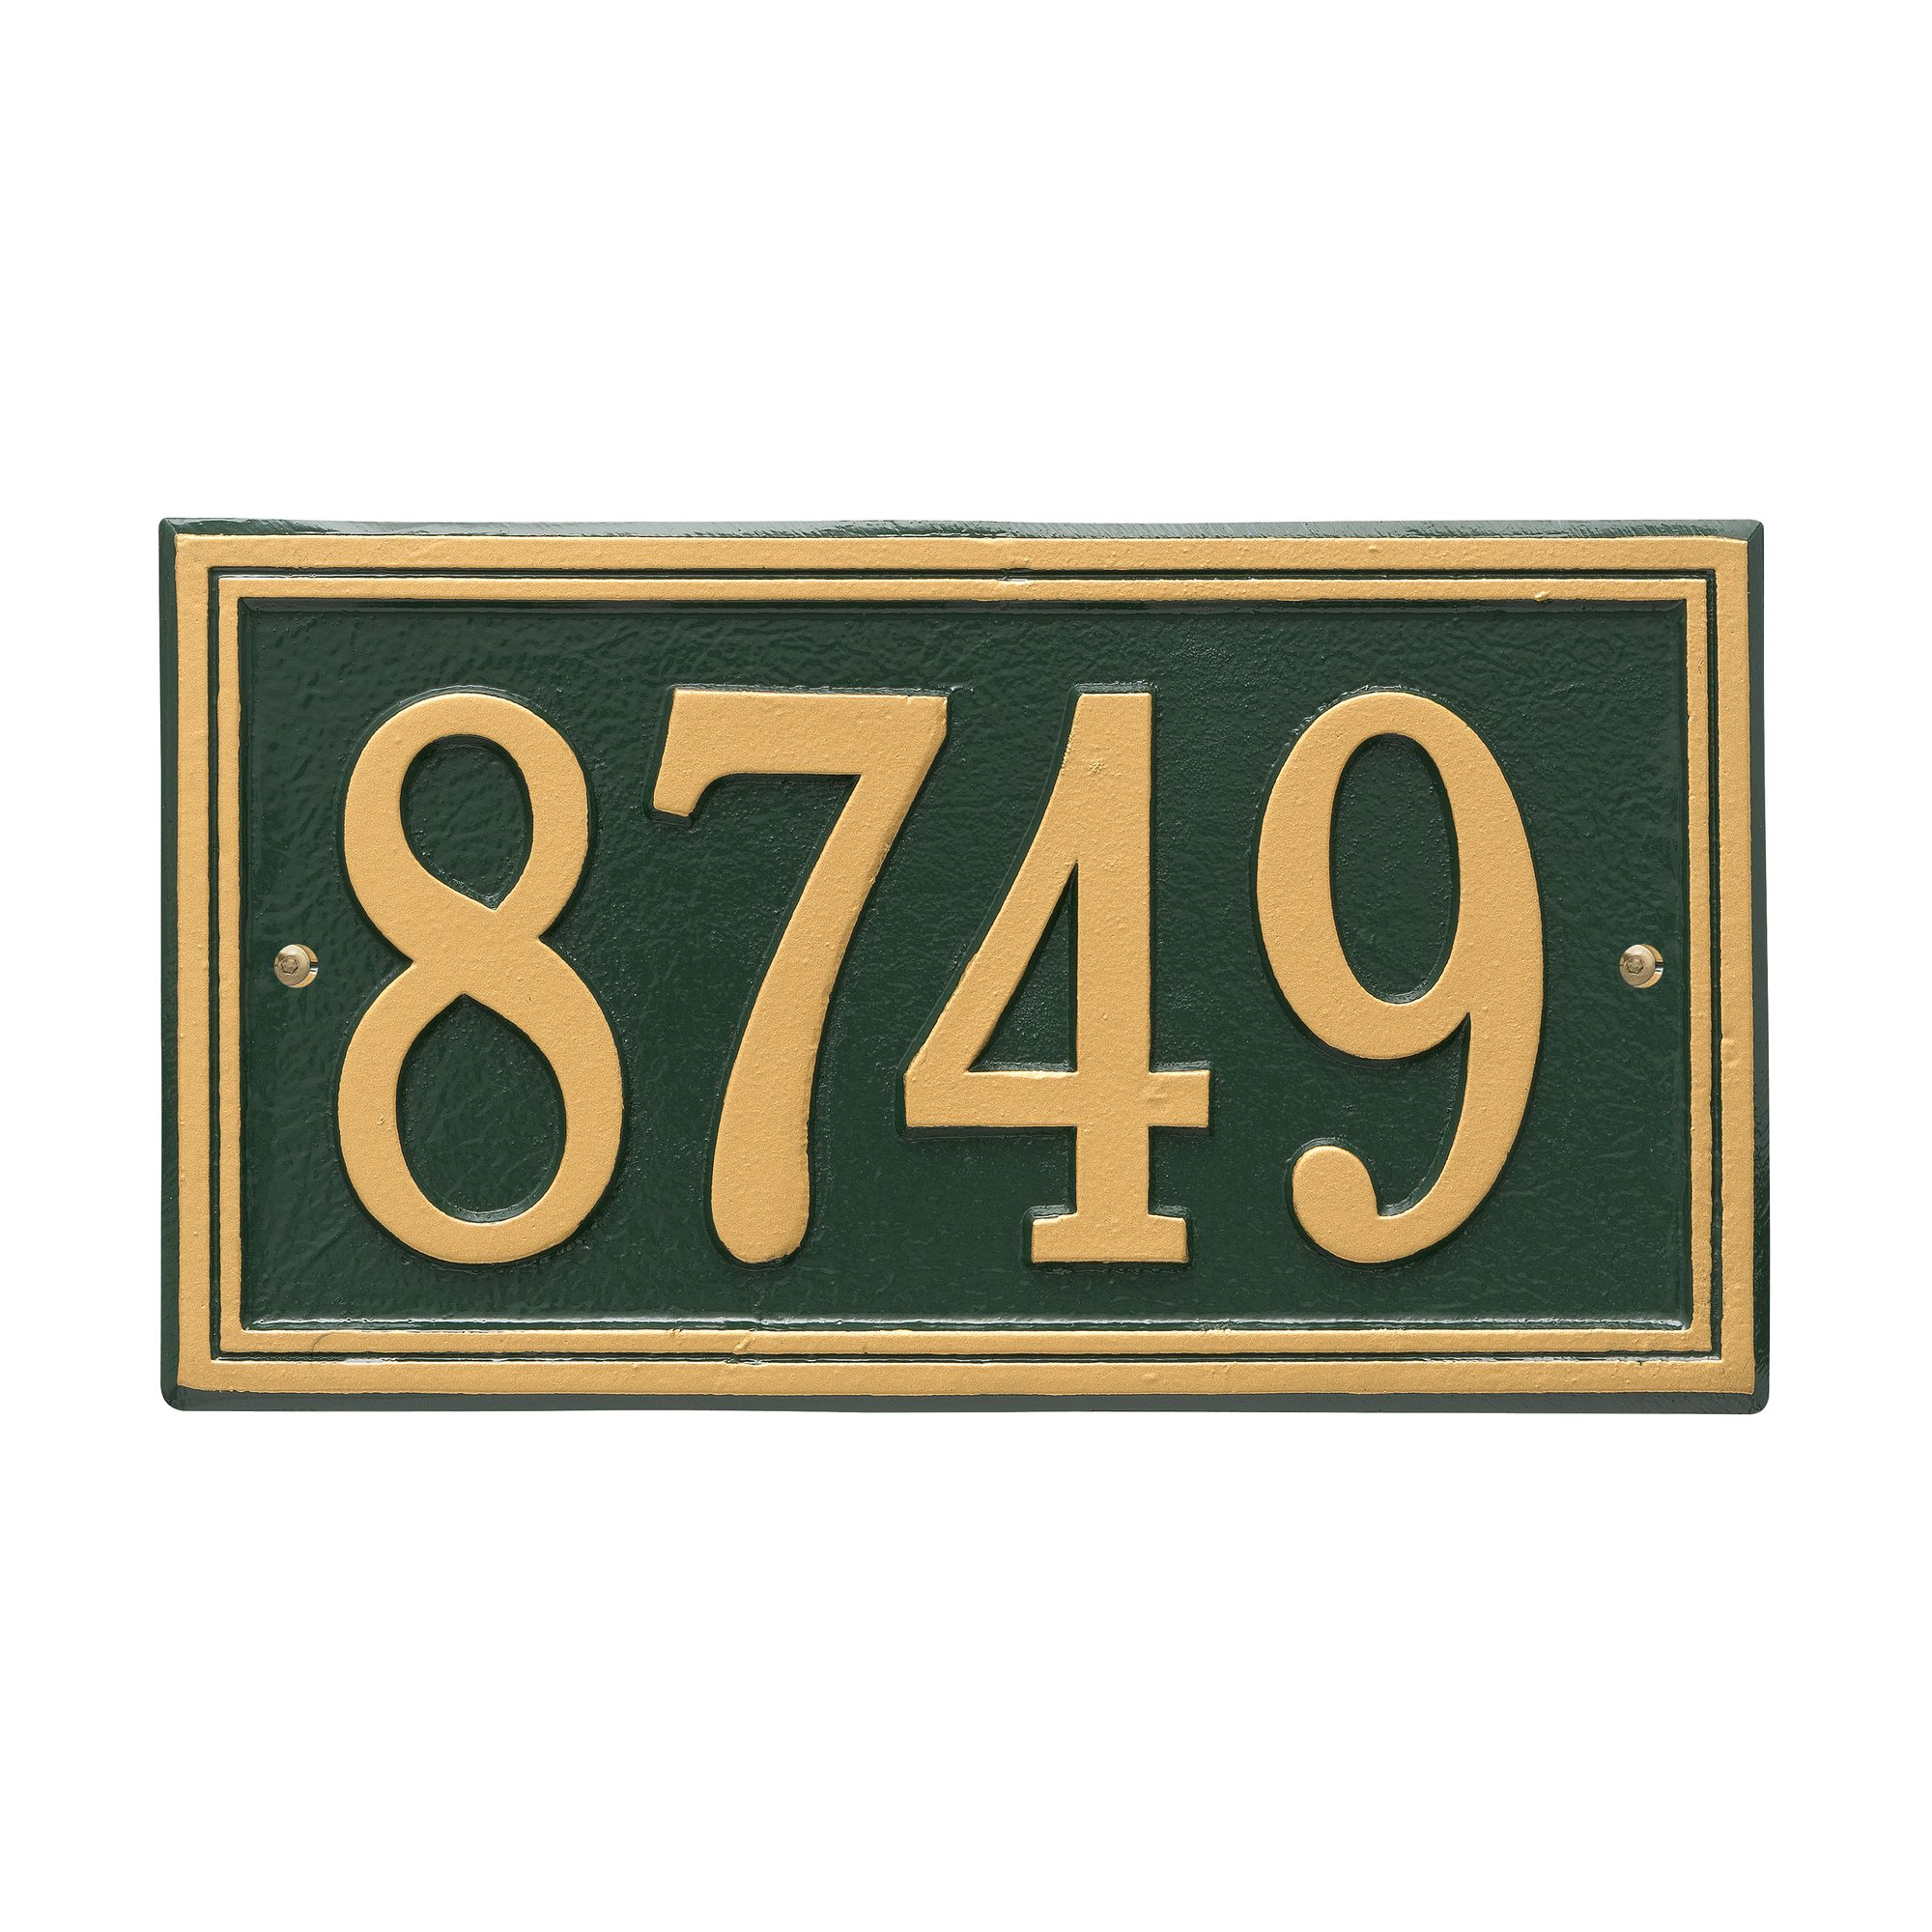 Personalized Whitehall Products Double Border1-Line House Numbers Plaque in Green/Gold